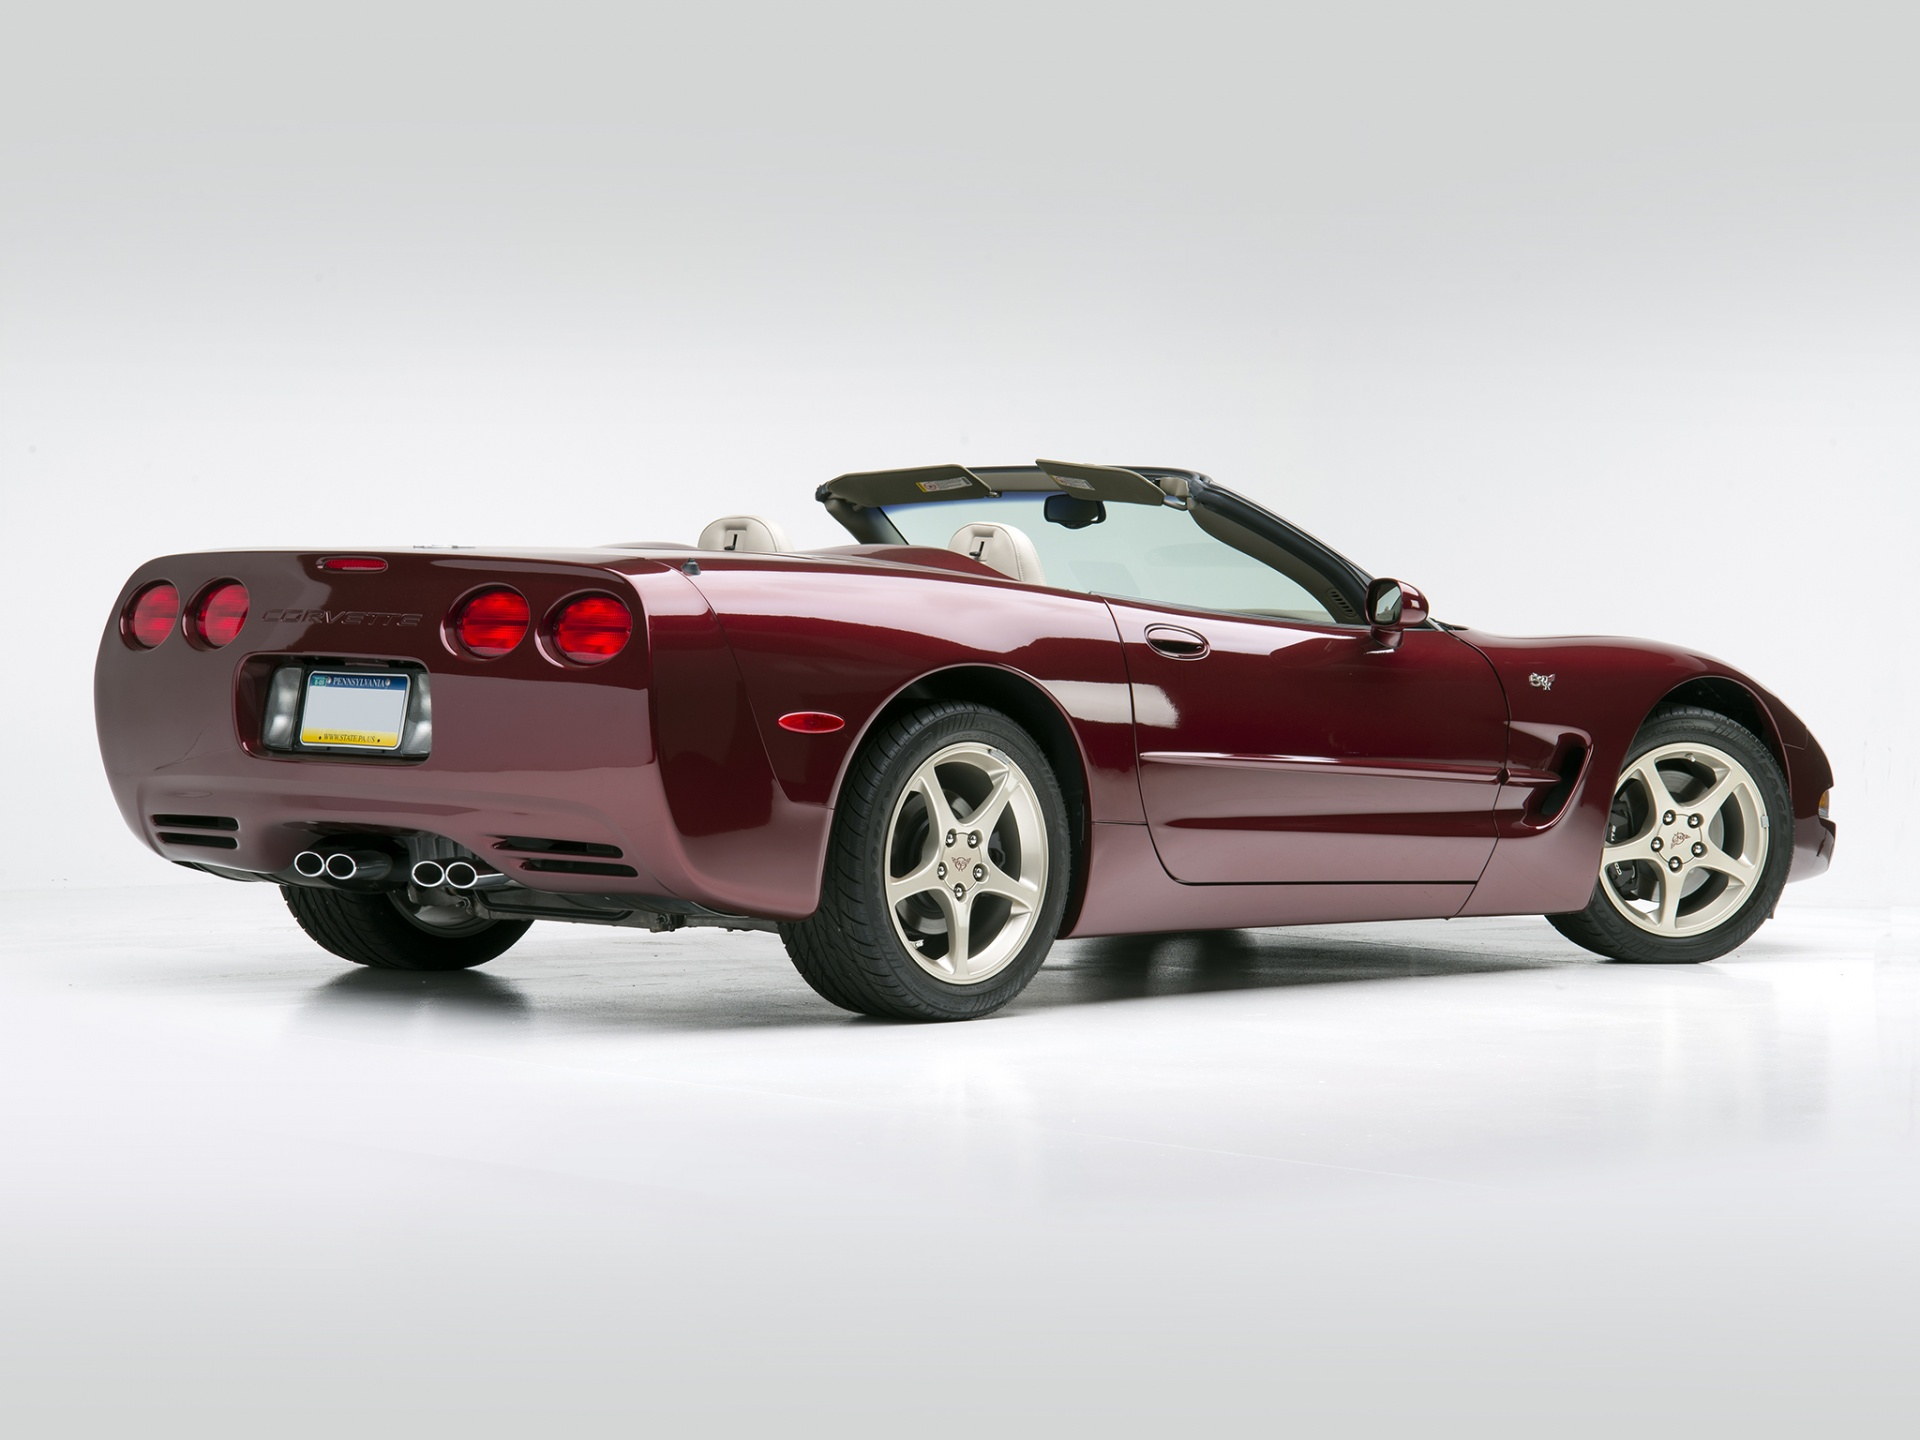 2002 Corvette Wallpapers